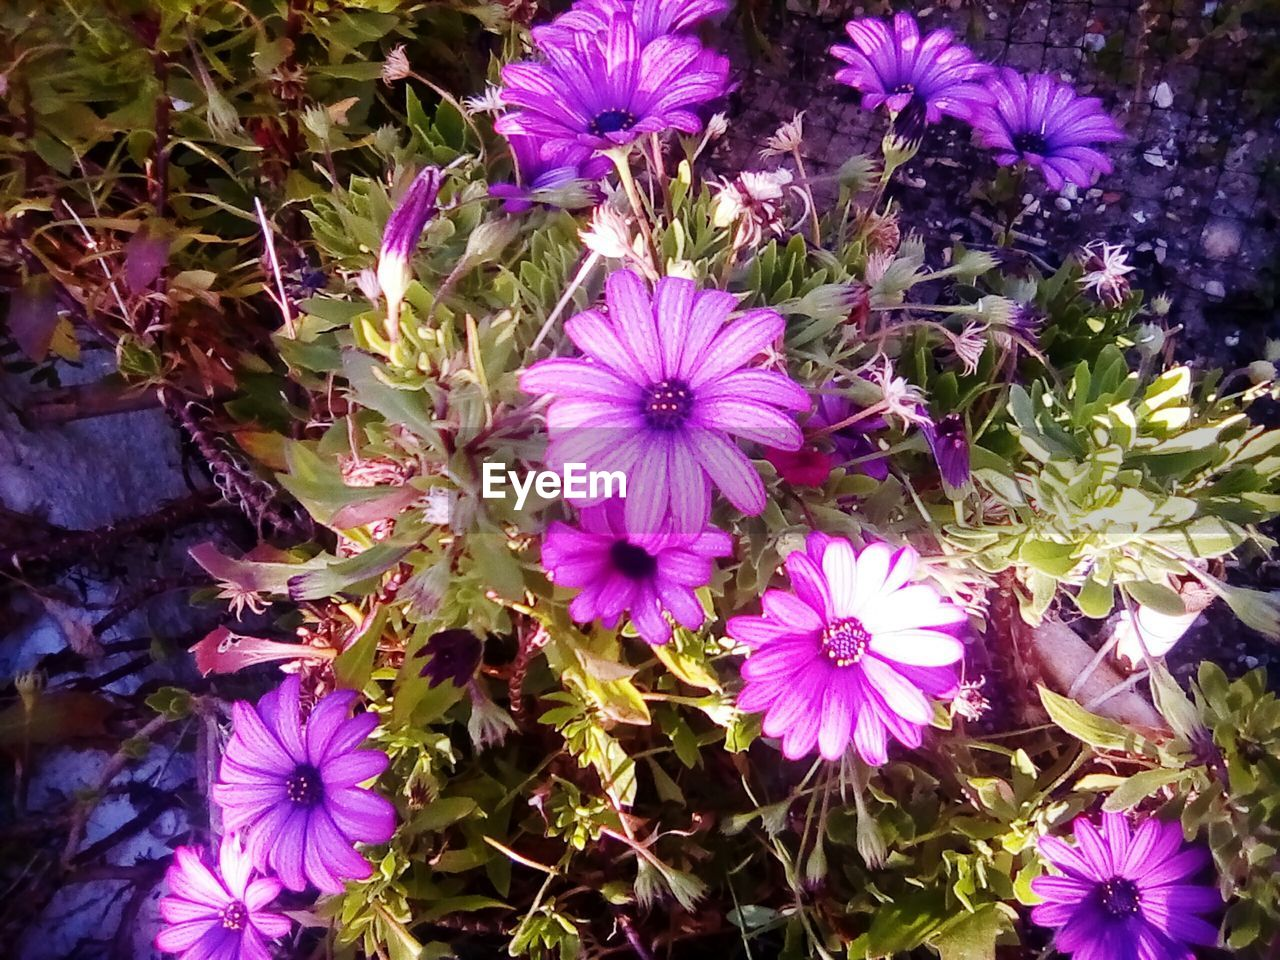 flower, purple, growth, nature, petal, plant, beauty in nature, fragility, no people, blooming, freshness, outdoors, flower head, day, osteospermum